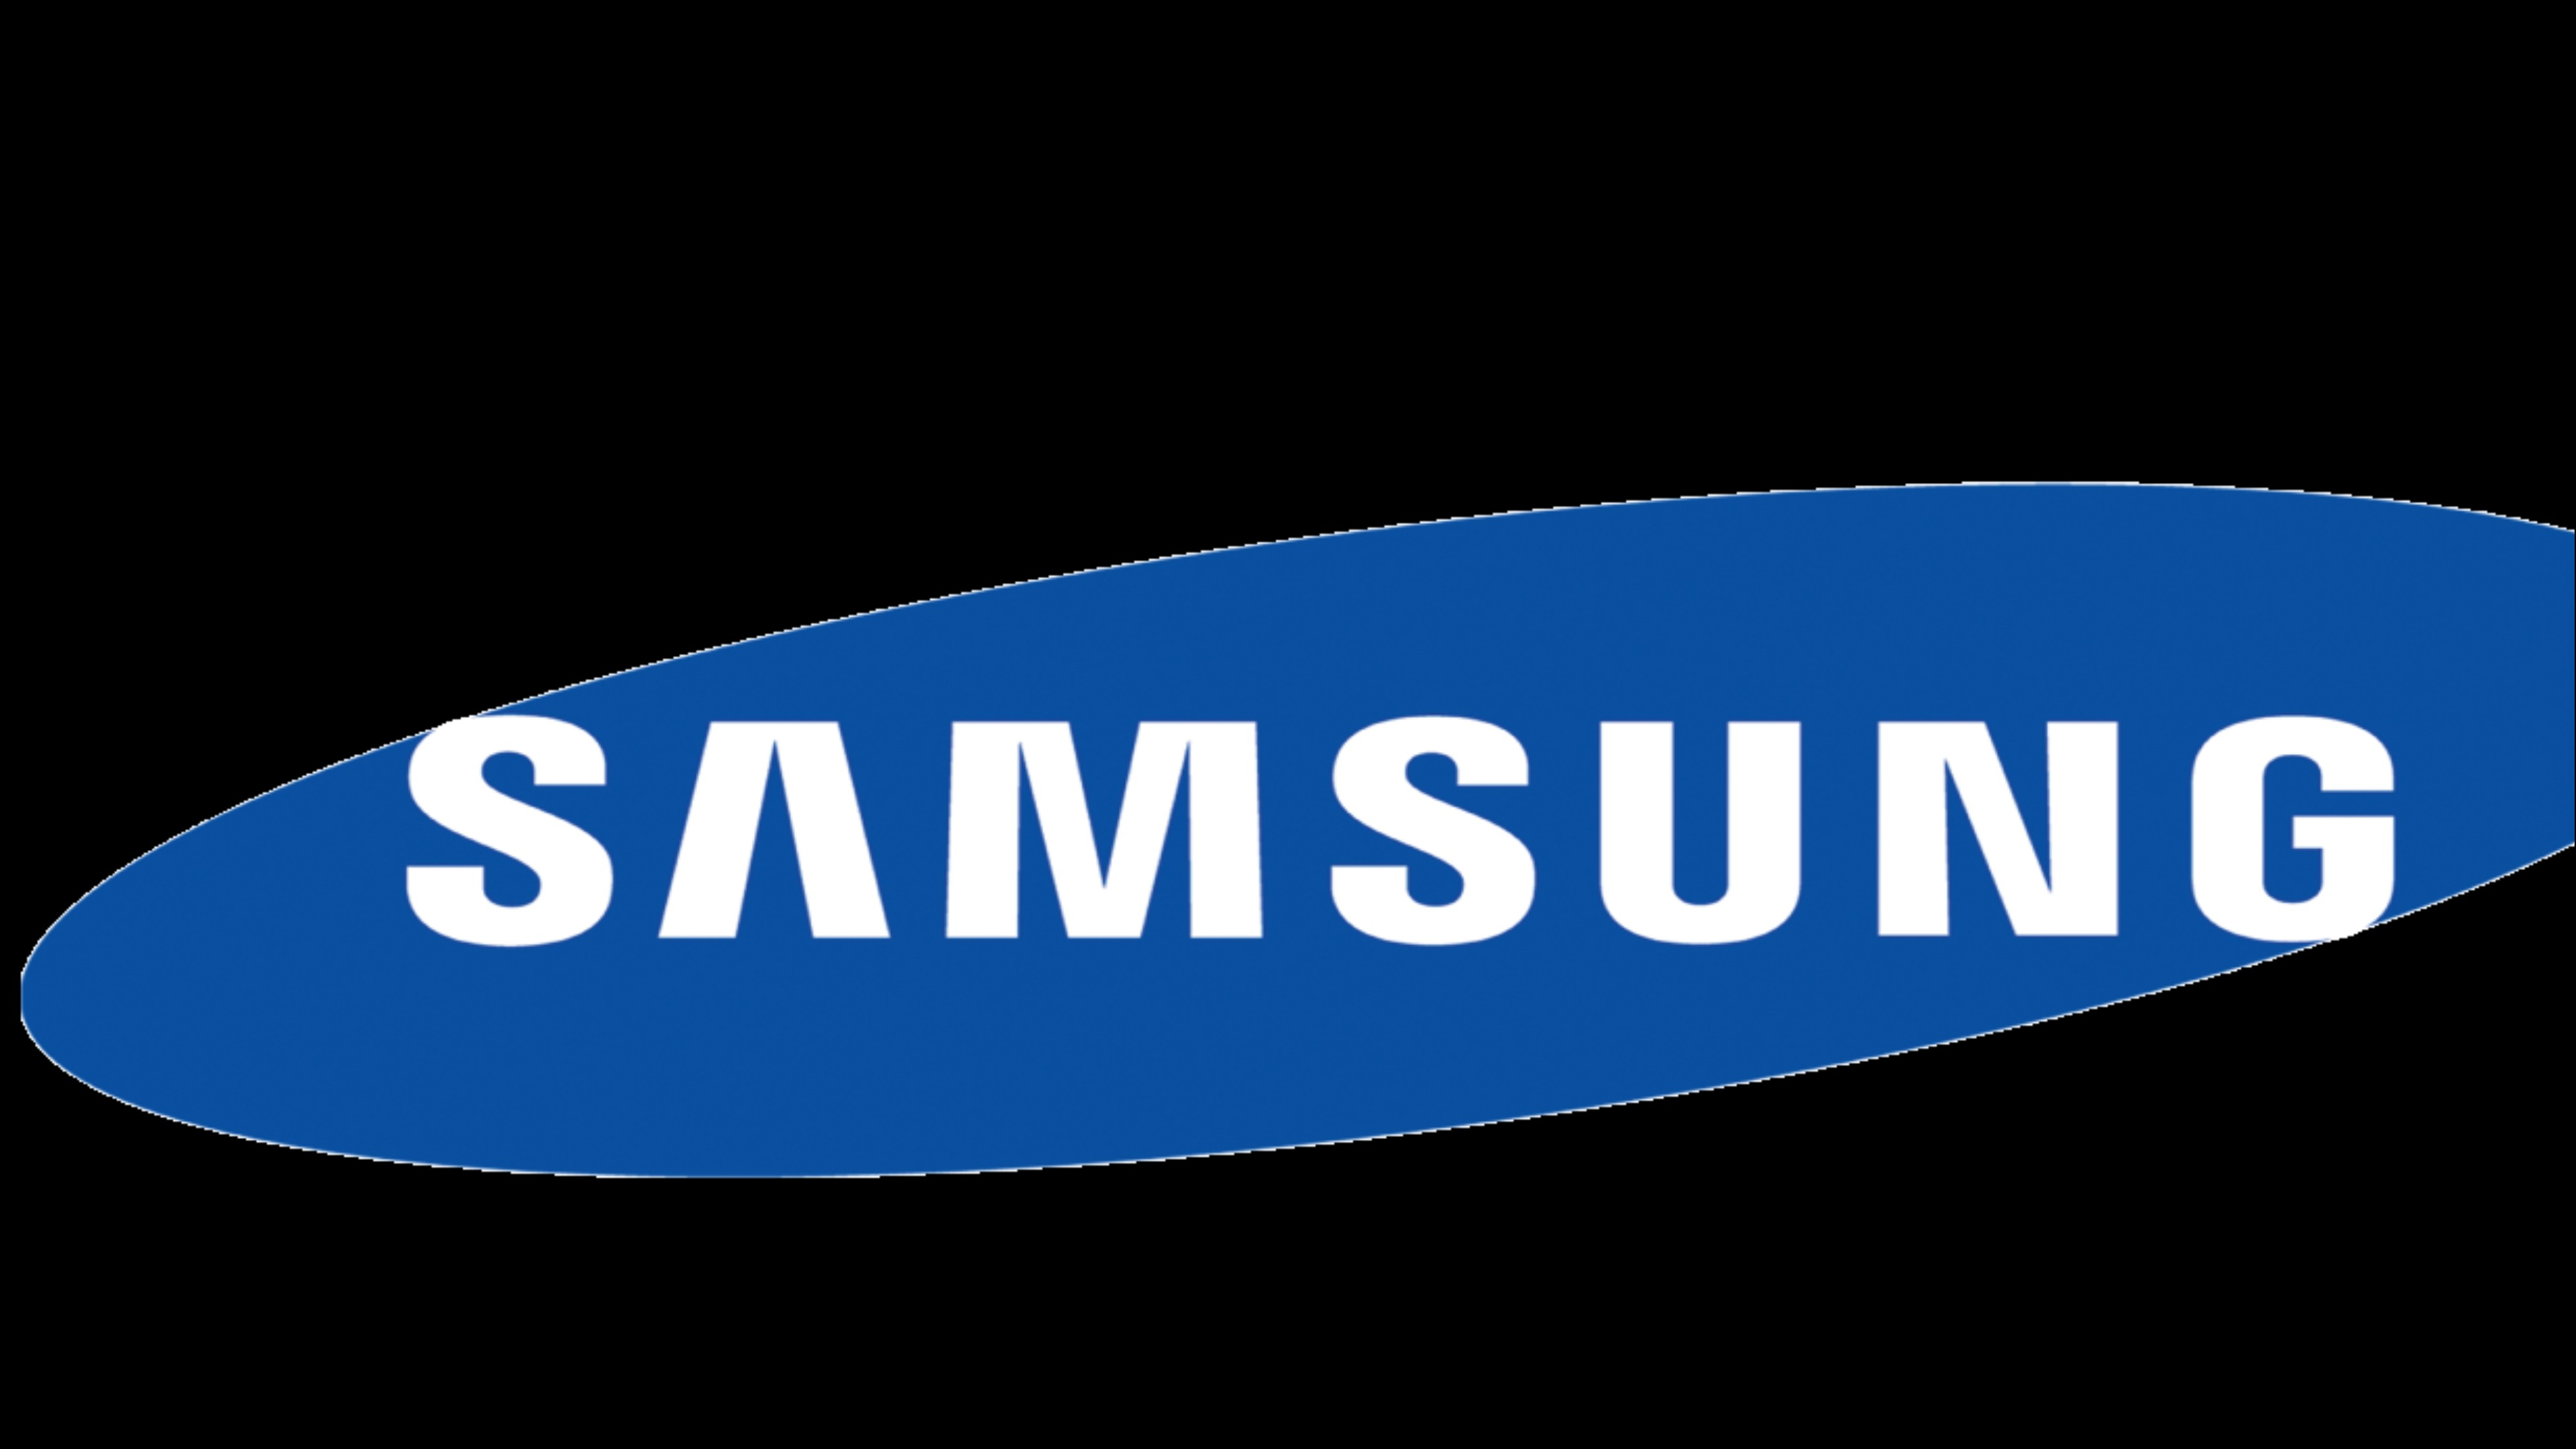 67 Samsung Logo Wallpaper On Wallpapersafari